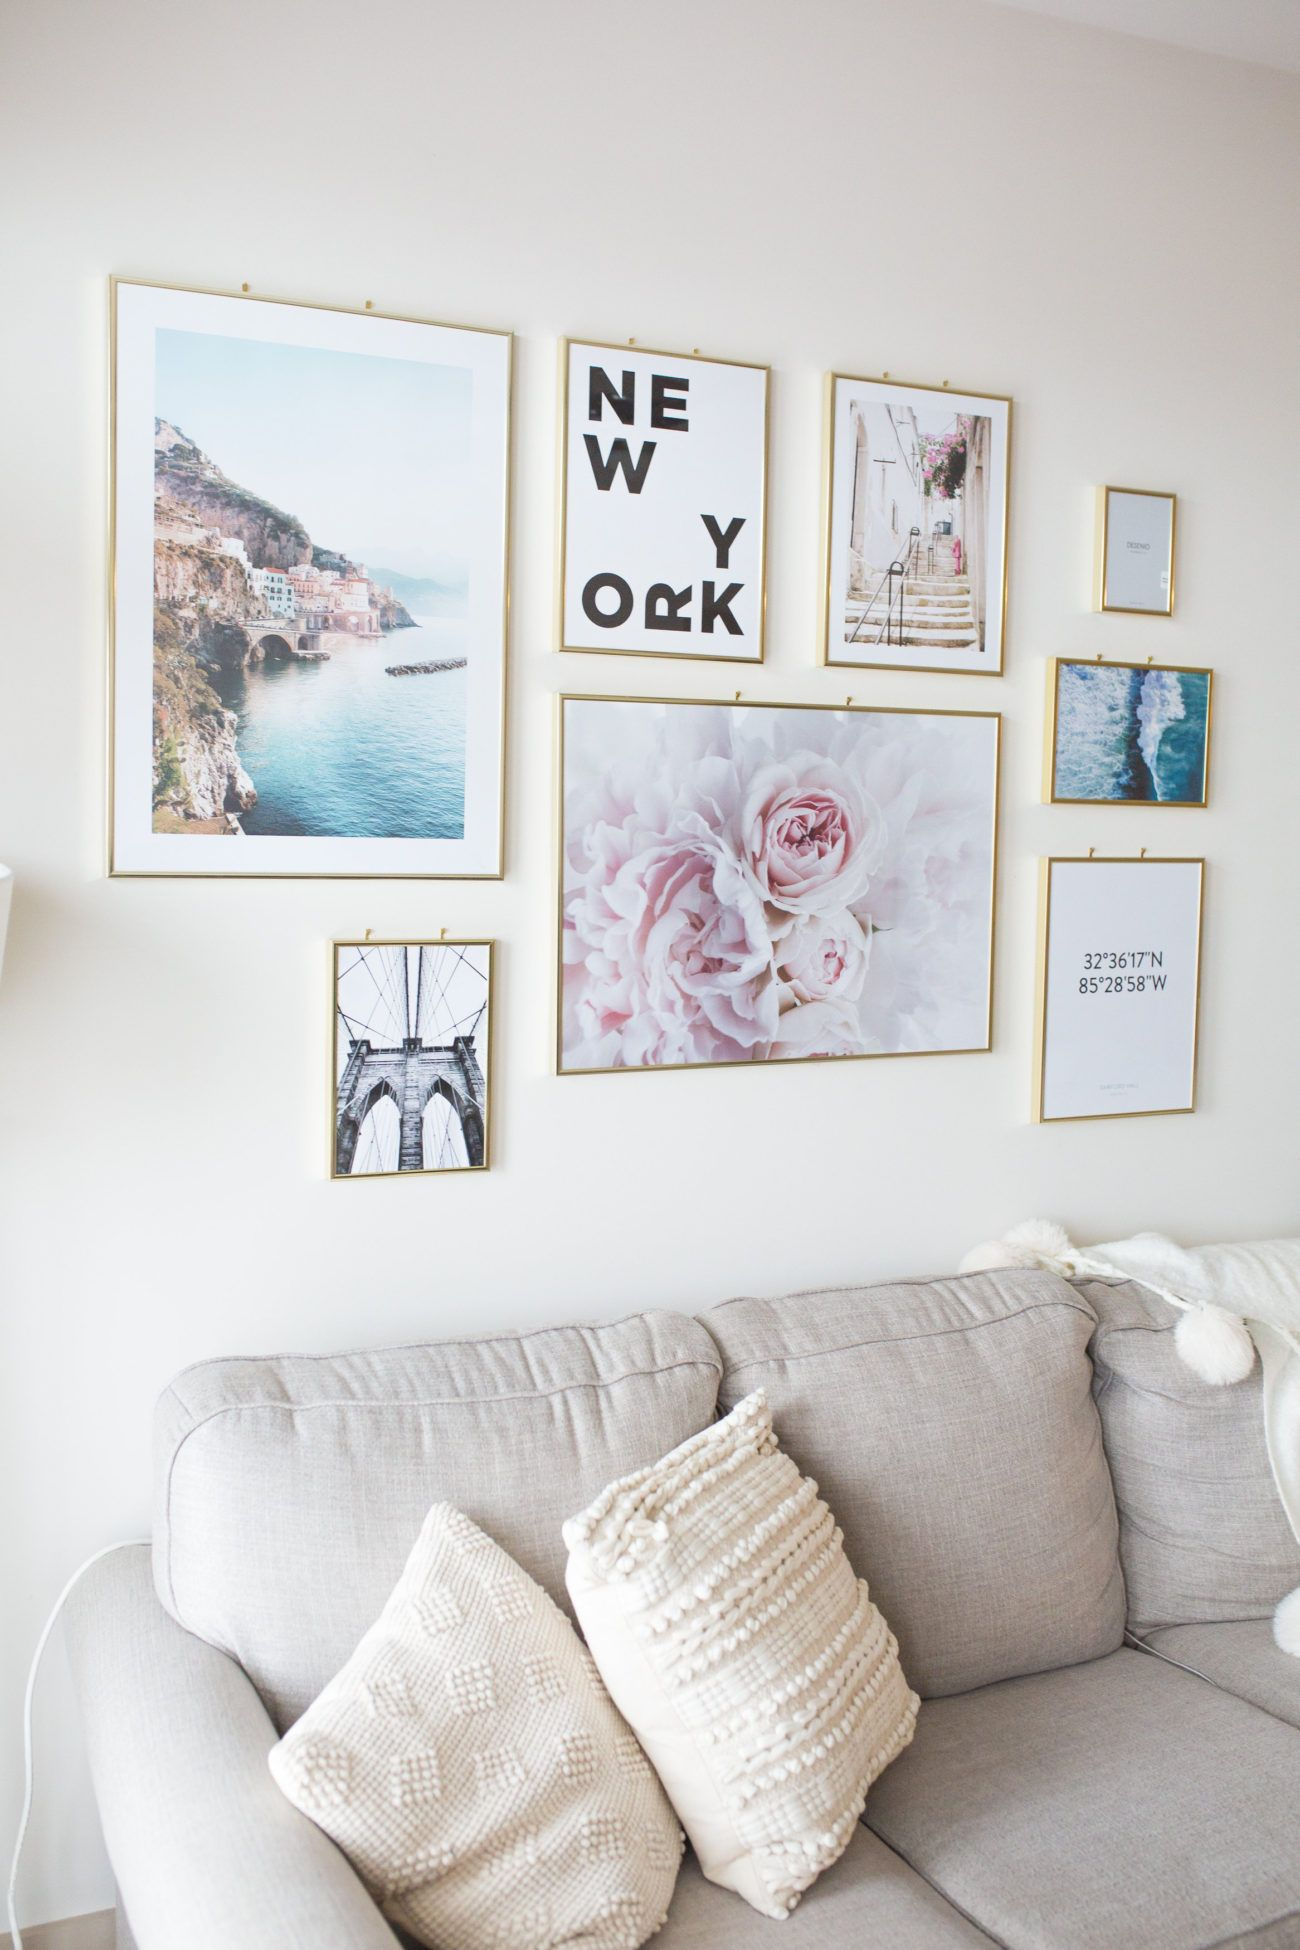 How To Style A Gallery Wall Small Space Inspiration In 2020